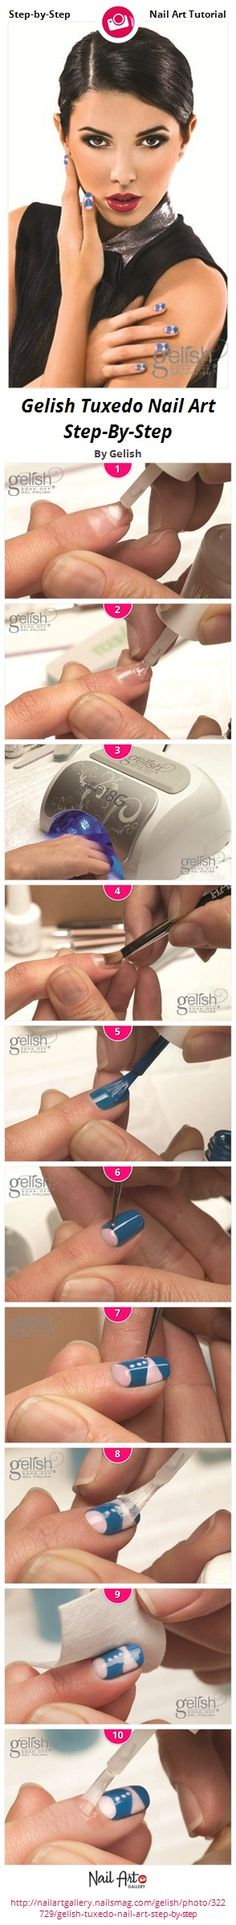 Gelish Tuxedo Nail Art Step-By-Step #gelish #nailart #stepbystep